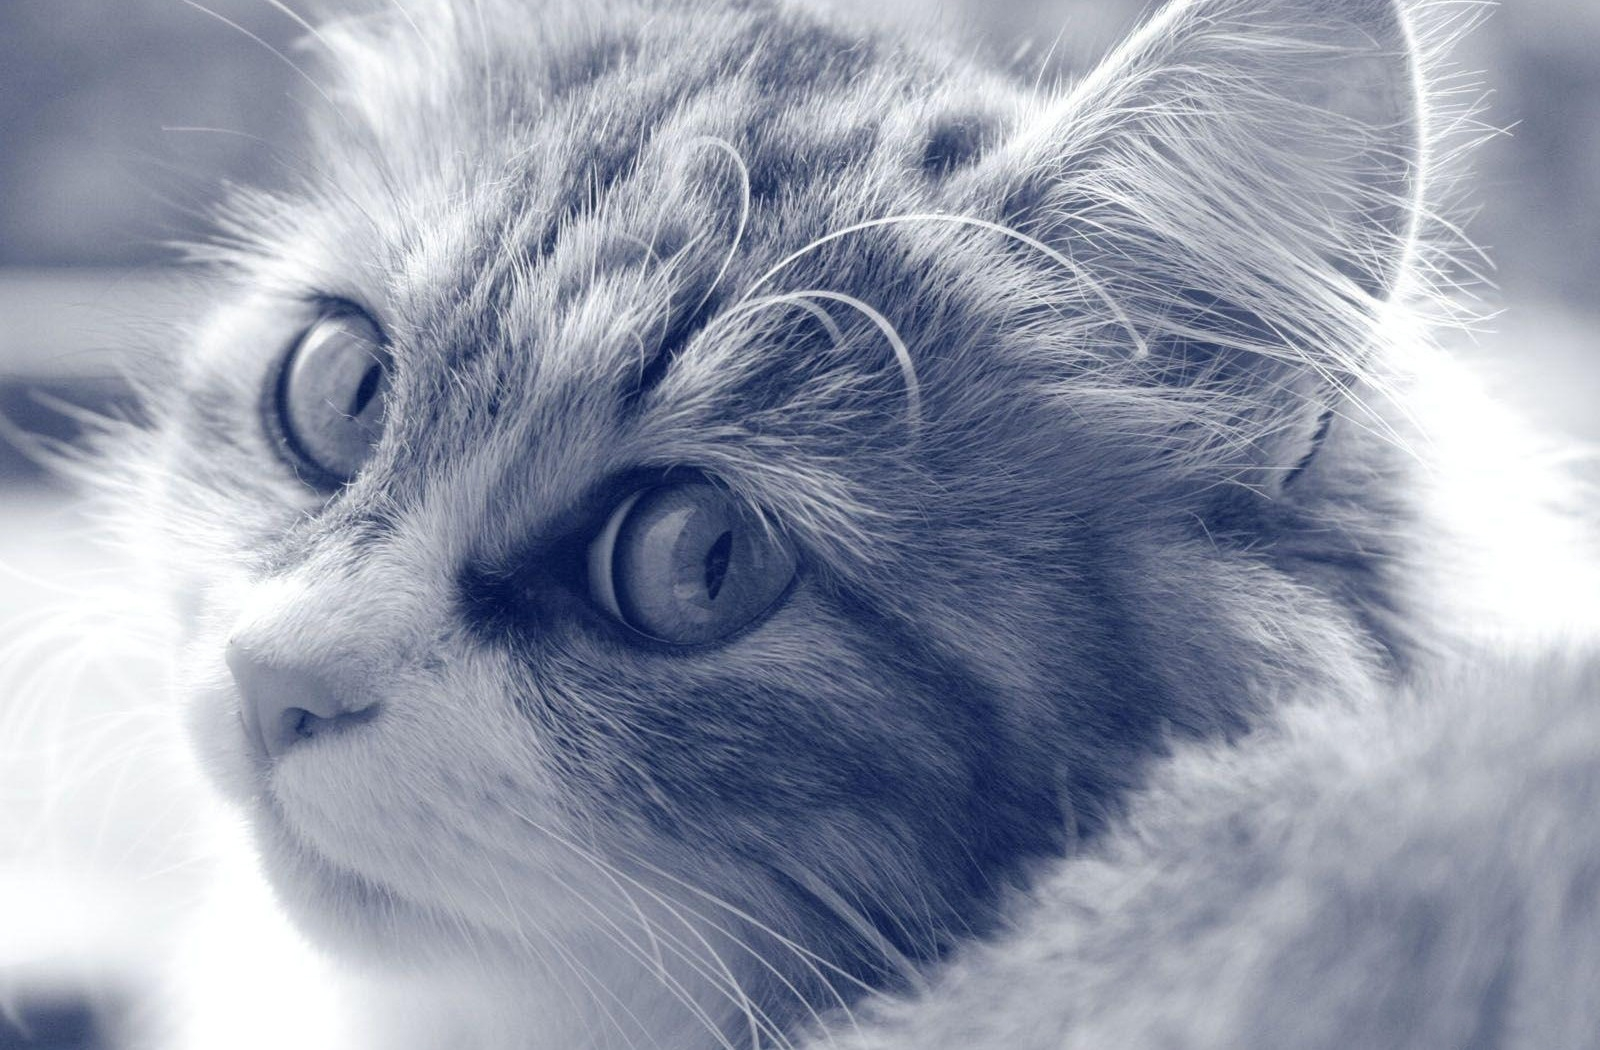 128055 download wallpaper Animals, Cat, Muzzle, Fluffy, Sight, Opinion, Bw, Chb screensavers and pictures for free